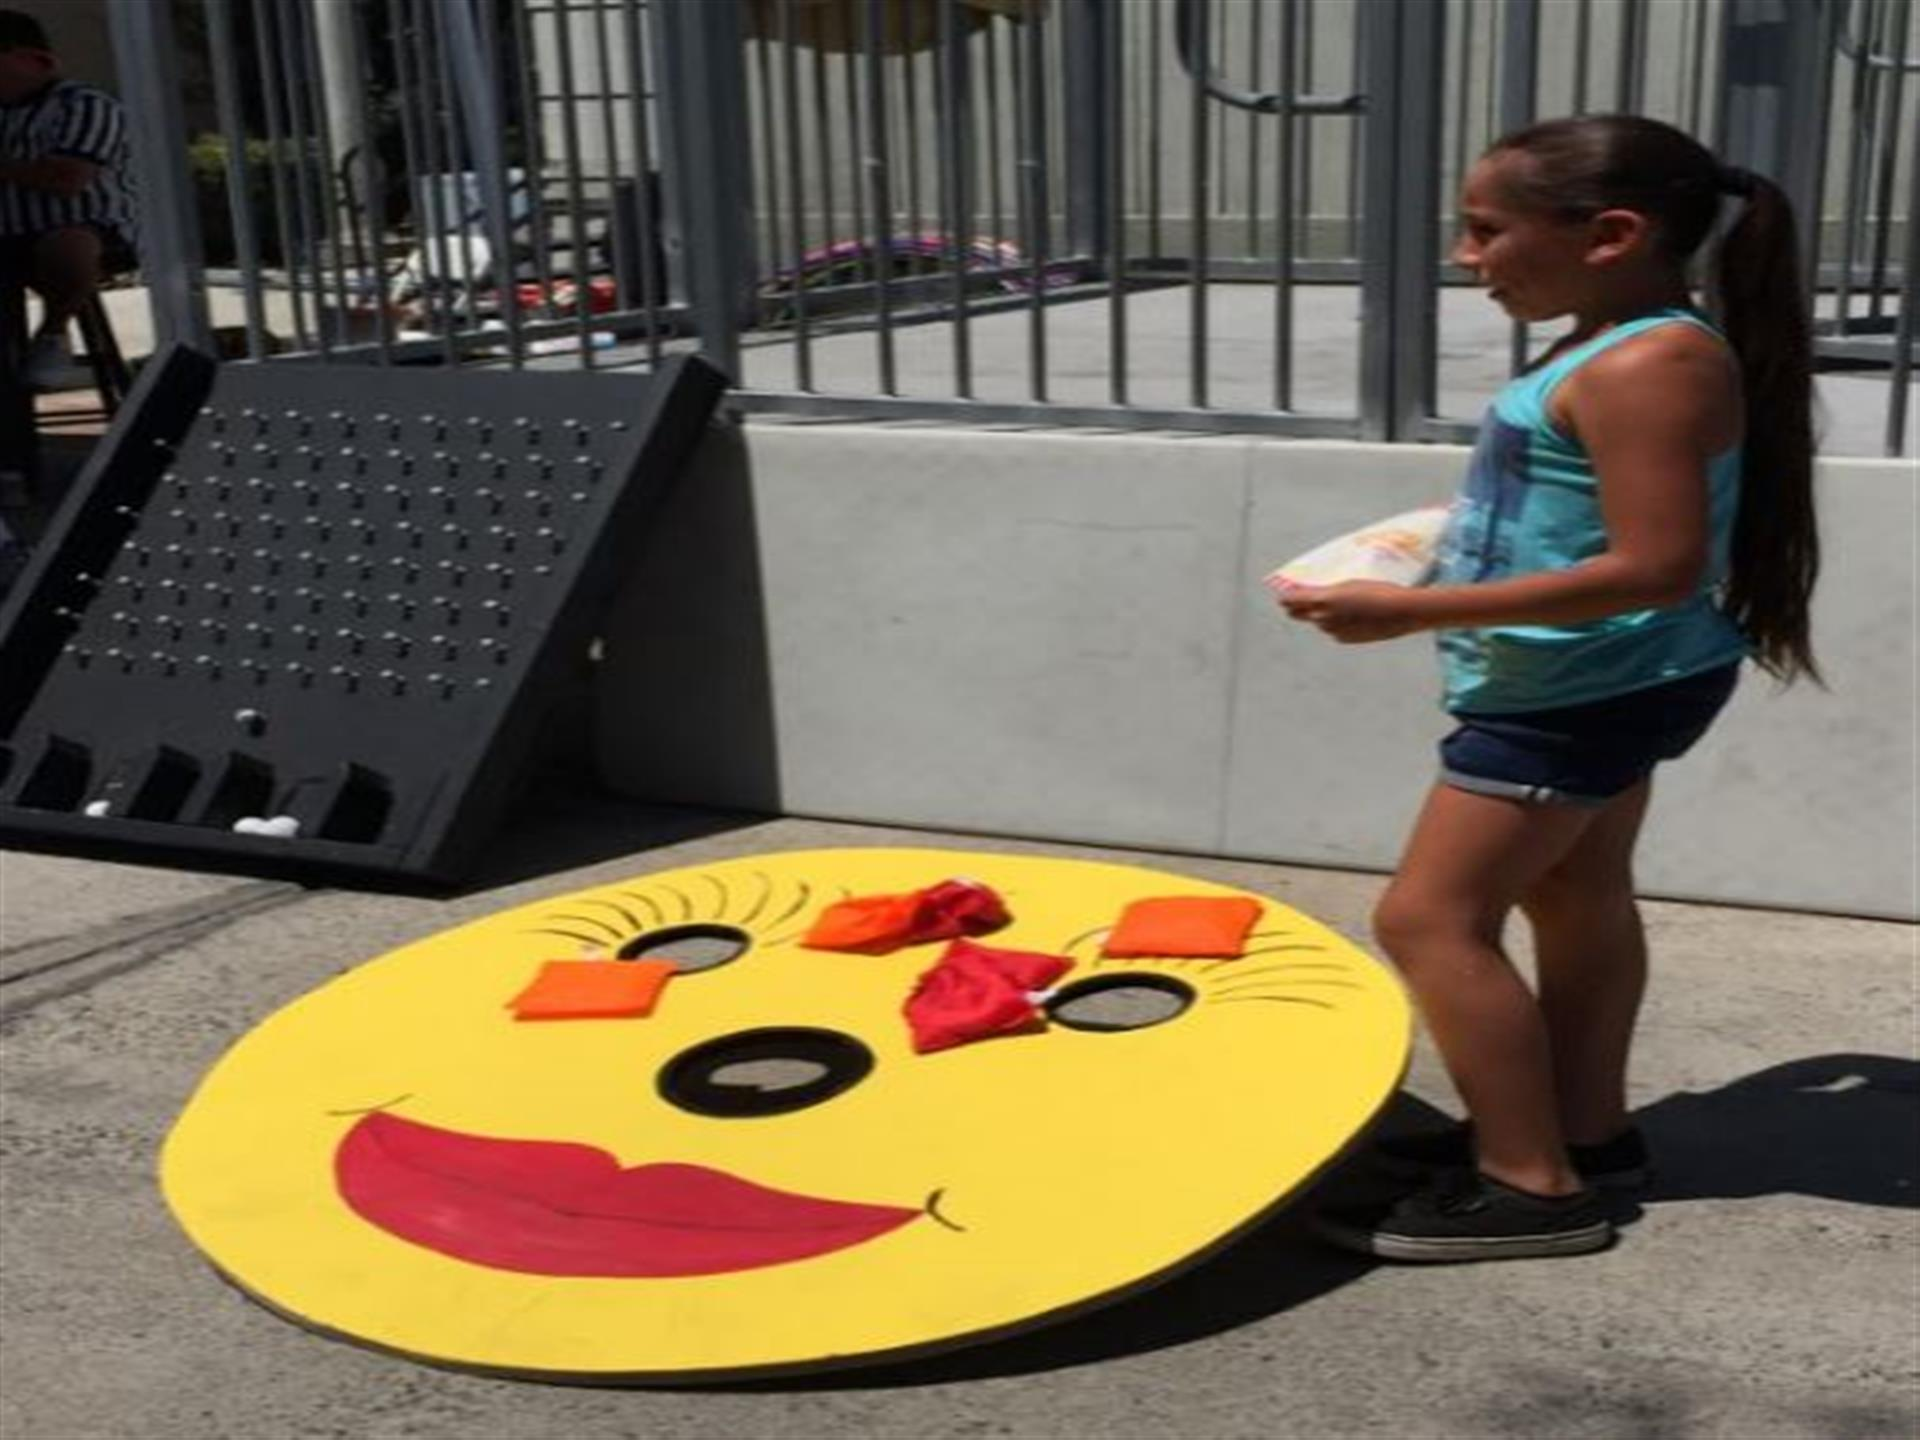 Young girl standing next to bean bag toss board